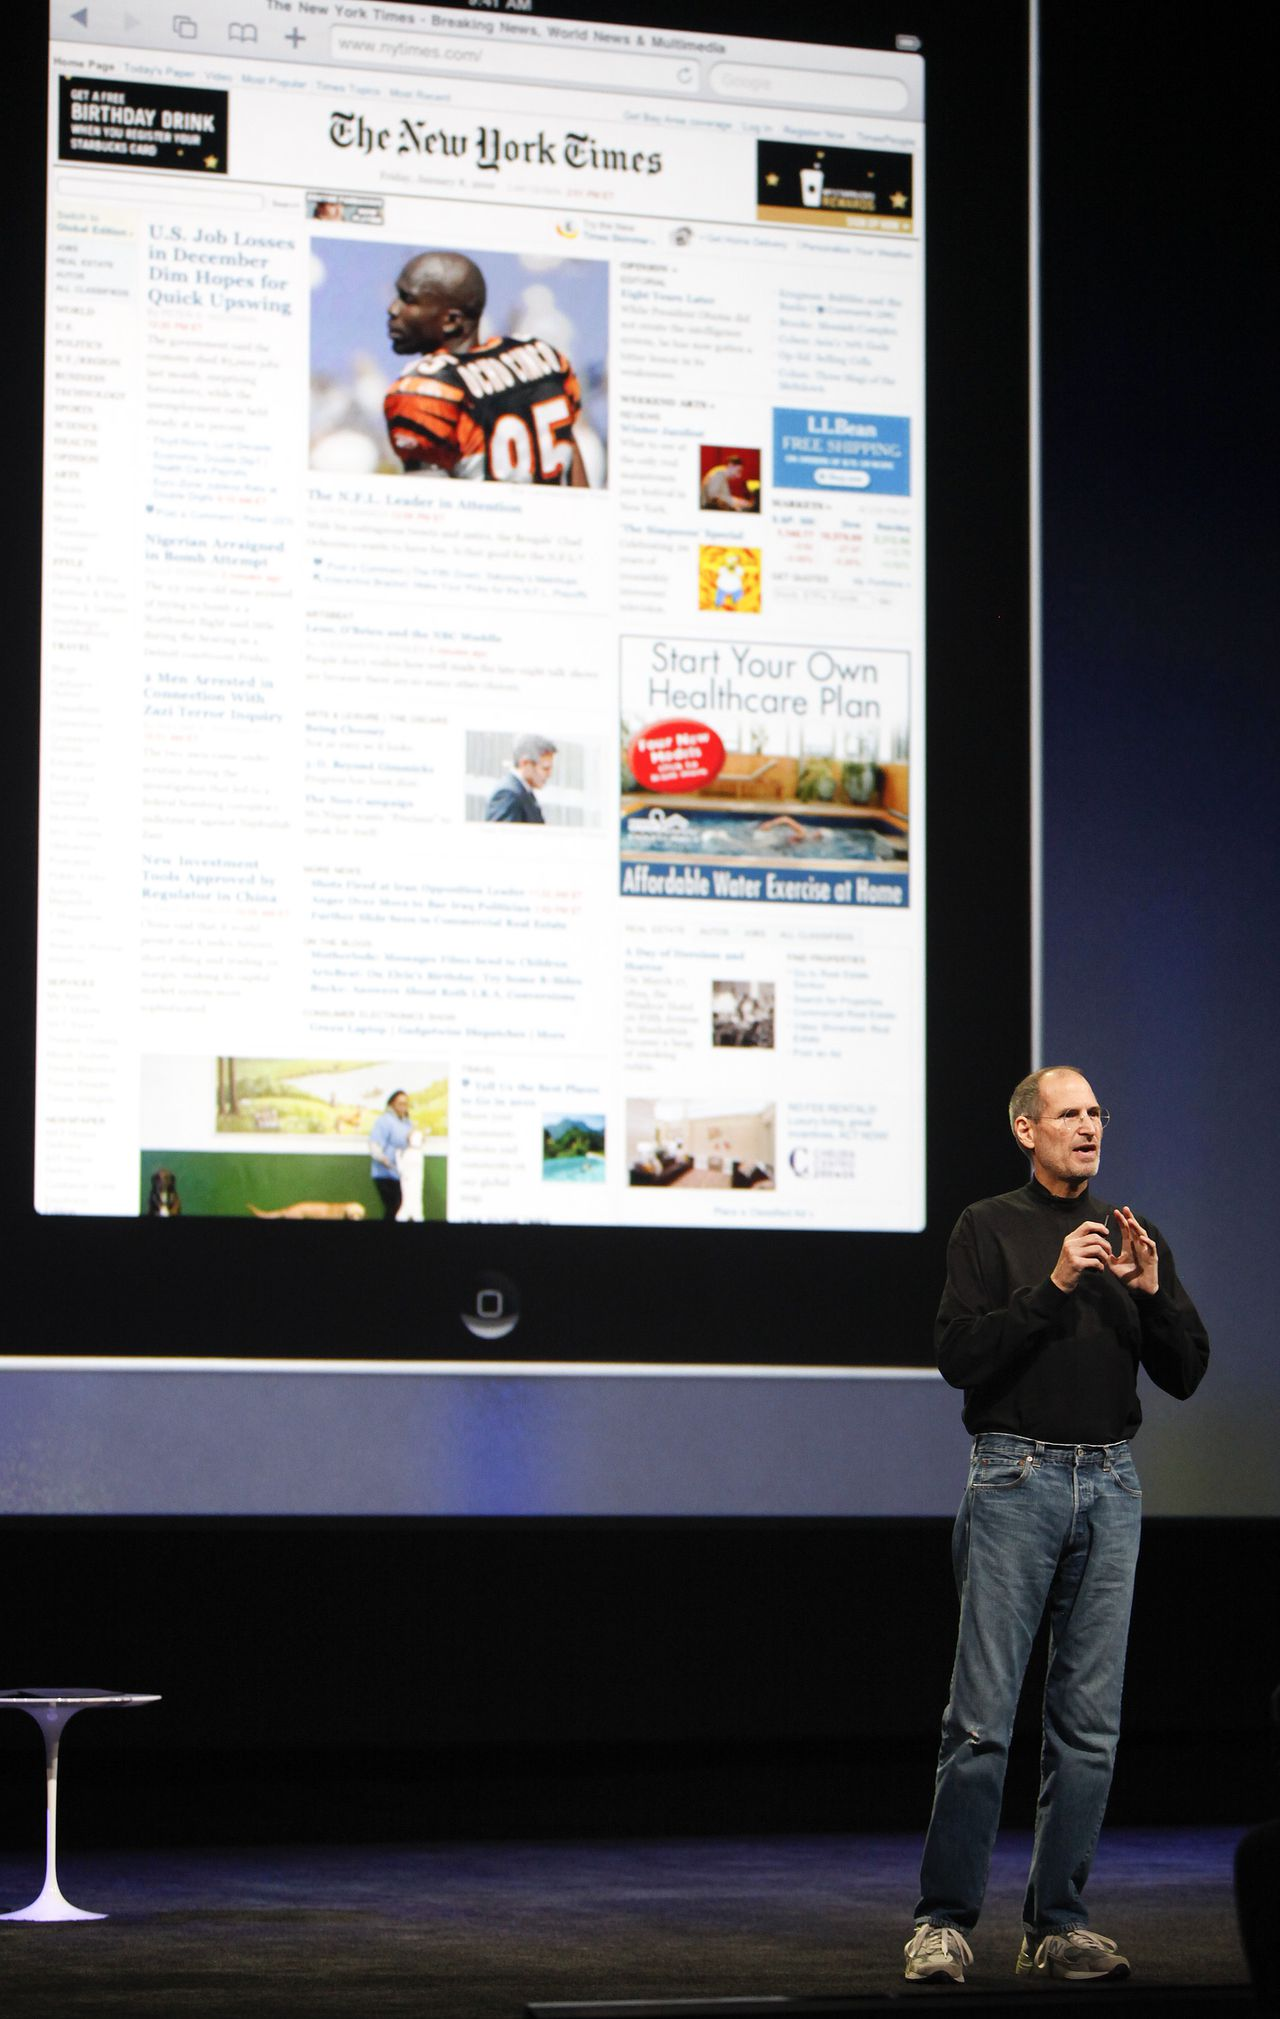 Steve Jobs van computerbedrijf Apple bij de lancering van de iPad computer in januari 2010. Foto Bloomberg Steve Jobs, chief executive officer of Apple Inc., speaks in front of an image of an Apple iPad tablet during its debut at the Yerba Buena Center for the Arts Theater in San Francisco, California, U.S., on Wednesday, Jan. 27, 2010. Apple Inc., trying to expand beyond the Macintosh, iPod and iPhone, introduced the iPad, a tablet computer with a touch screen. Photographer: Tony Avelar/Bloomberg *** Local Caption *** Steve Jobs